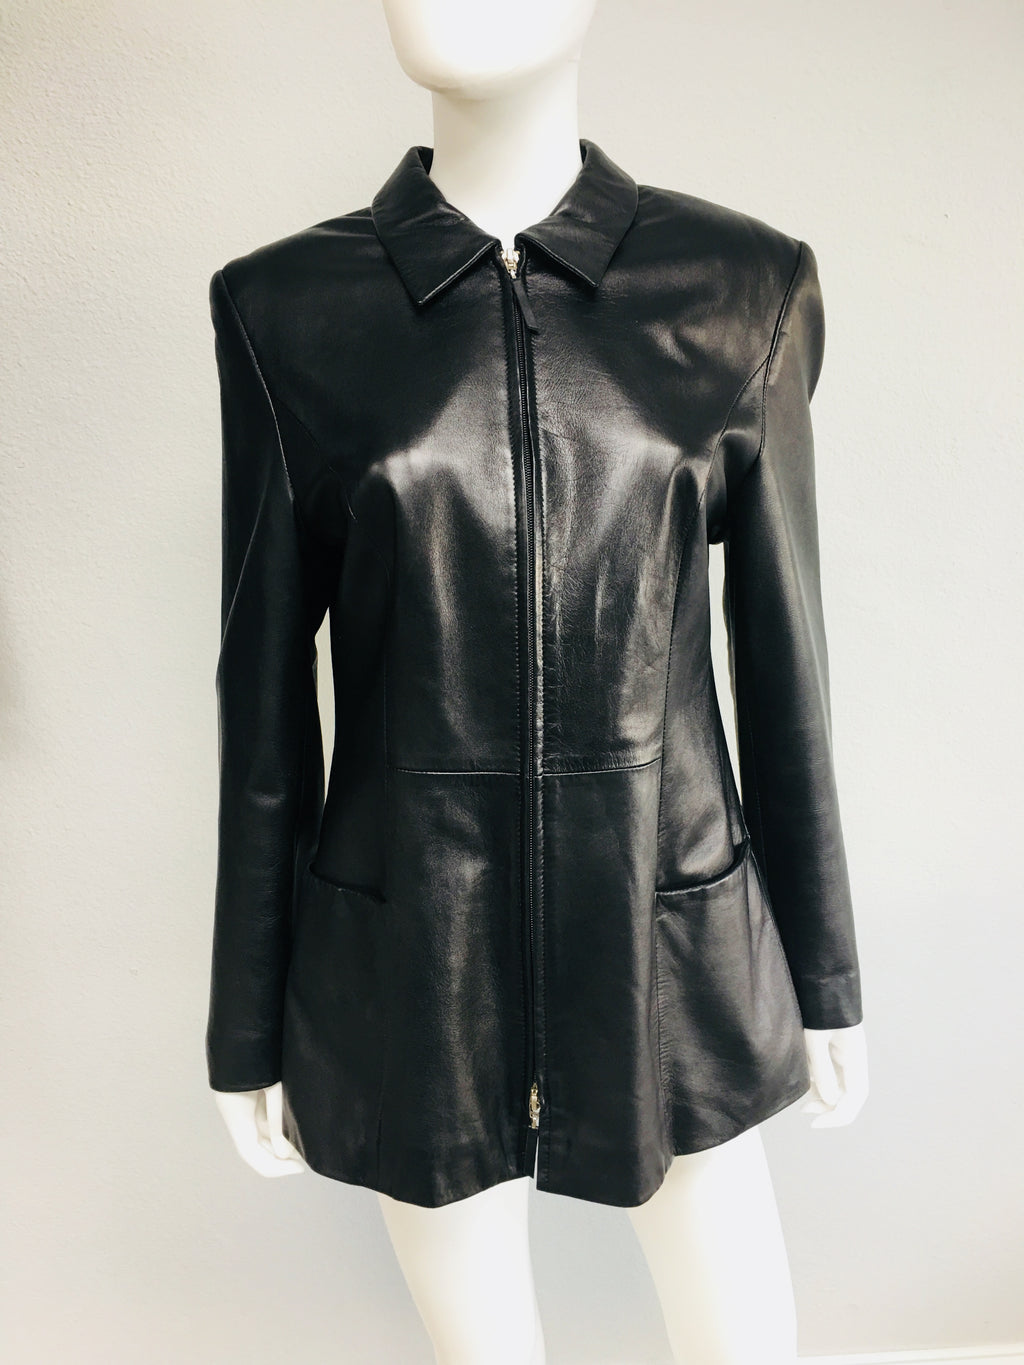 Gerry Webber leather jacket